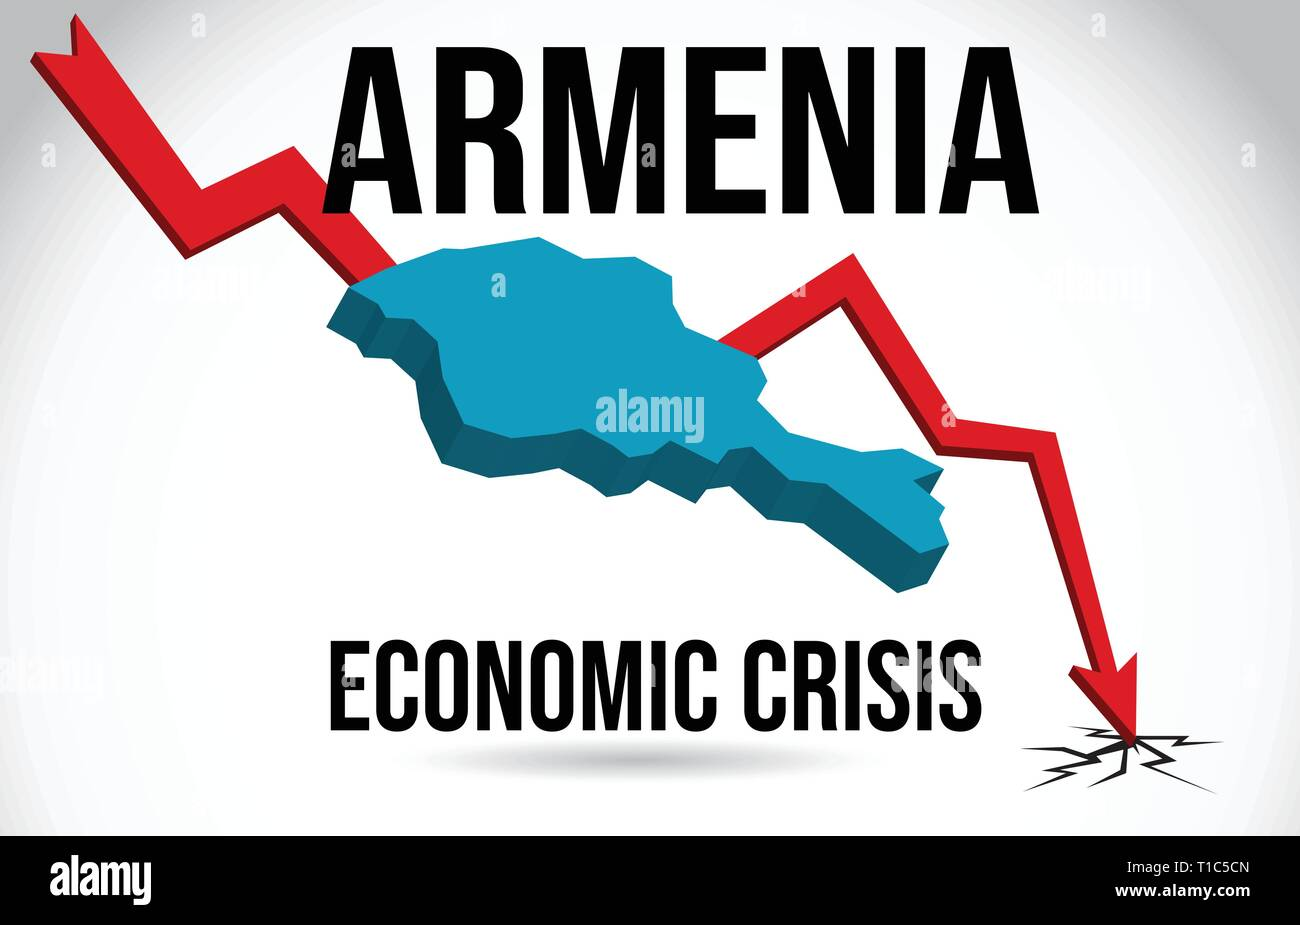 Armenia Map Financial Crisis Economic Collapse Market Crash Global Meltdown Vector Illustration. - Stock Vector